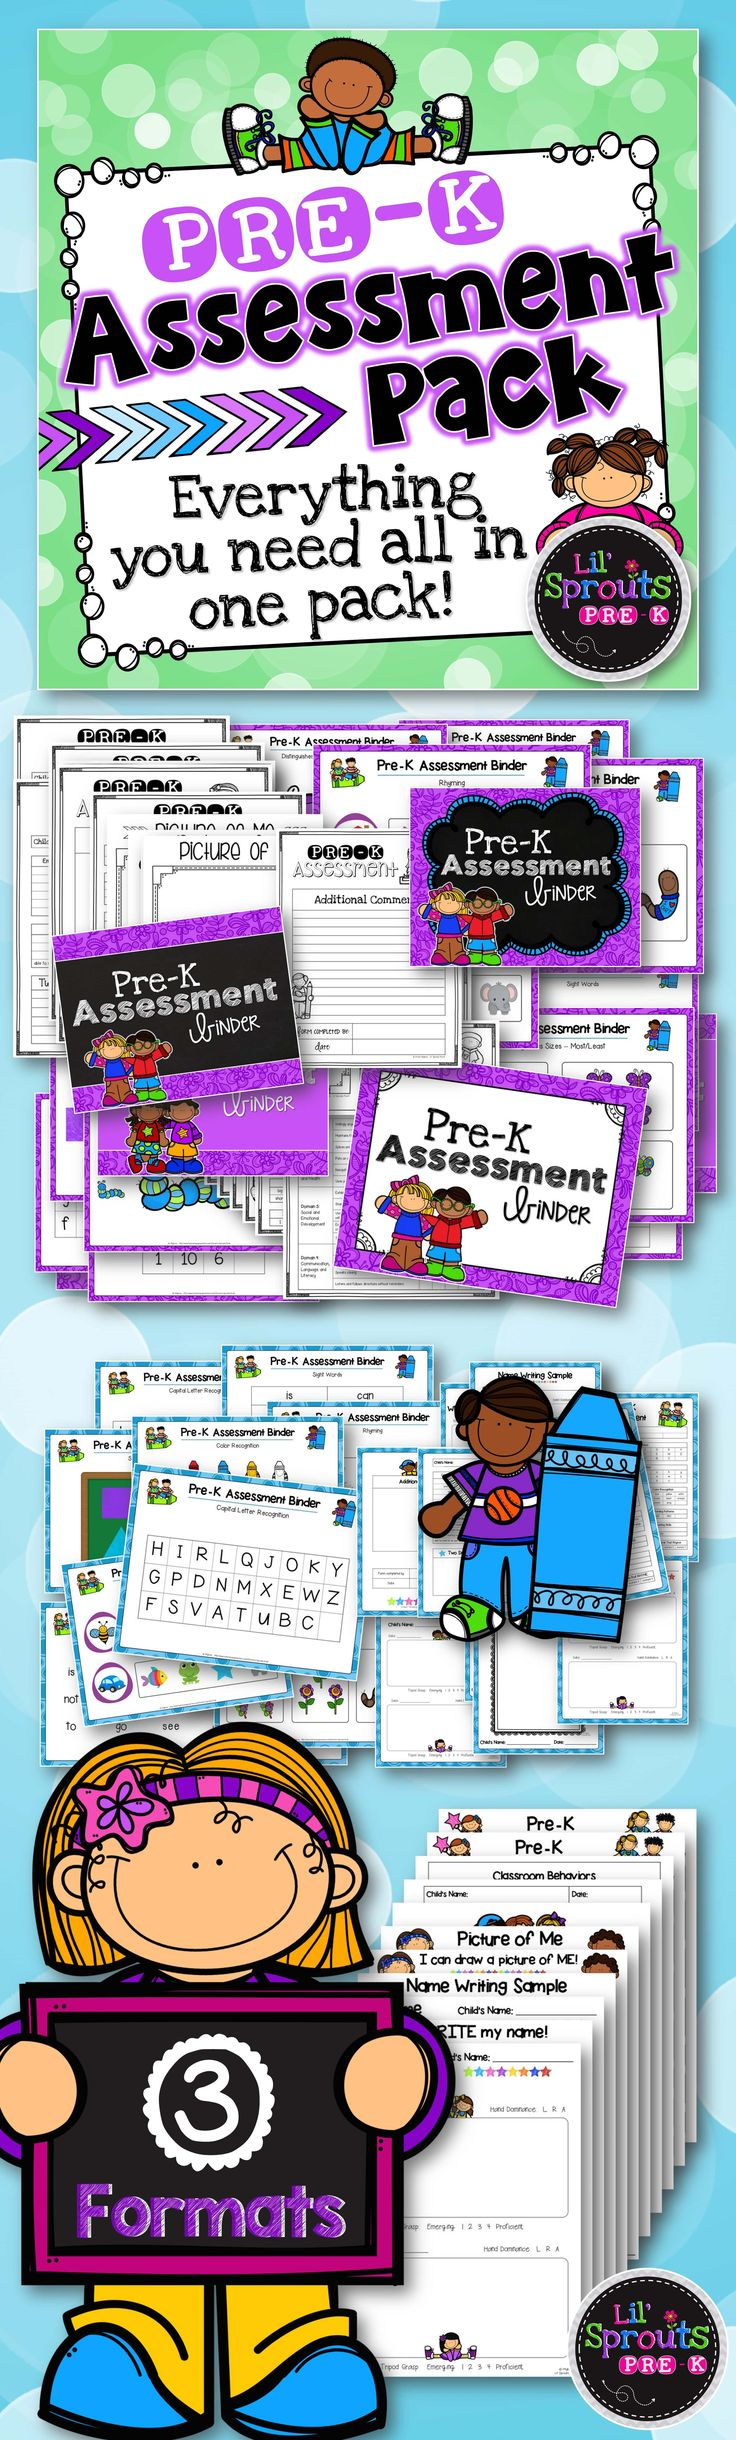 This Pre-K Assessment Pack includes everything you need for assessing your students! Perfect for back to school! I created this Assessment Pack using the Pre-K Common Core. It includes everything you need to assess your kids (except manipulatives for patterning and counting). I send these reports home three times a year. I've had a lot of positive feedback from parents on these.   Lil' Sprouts Pre-K